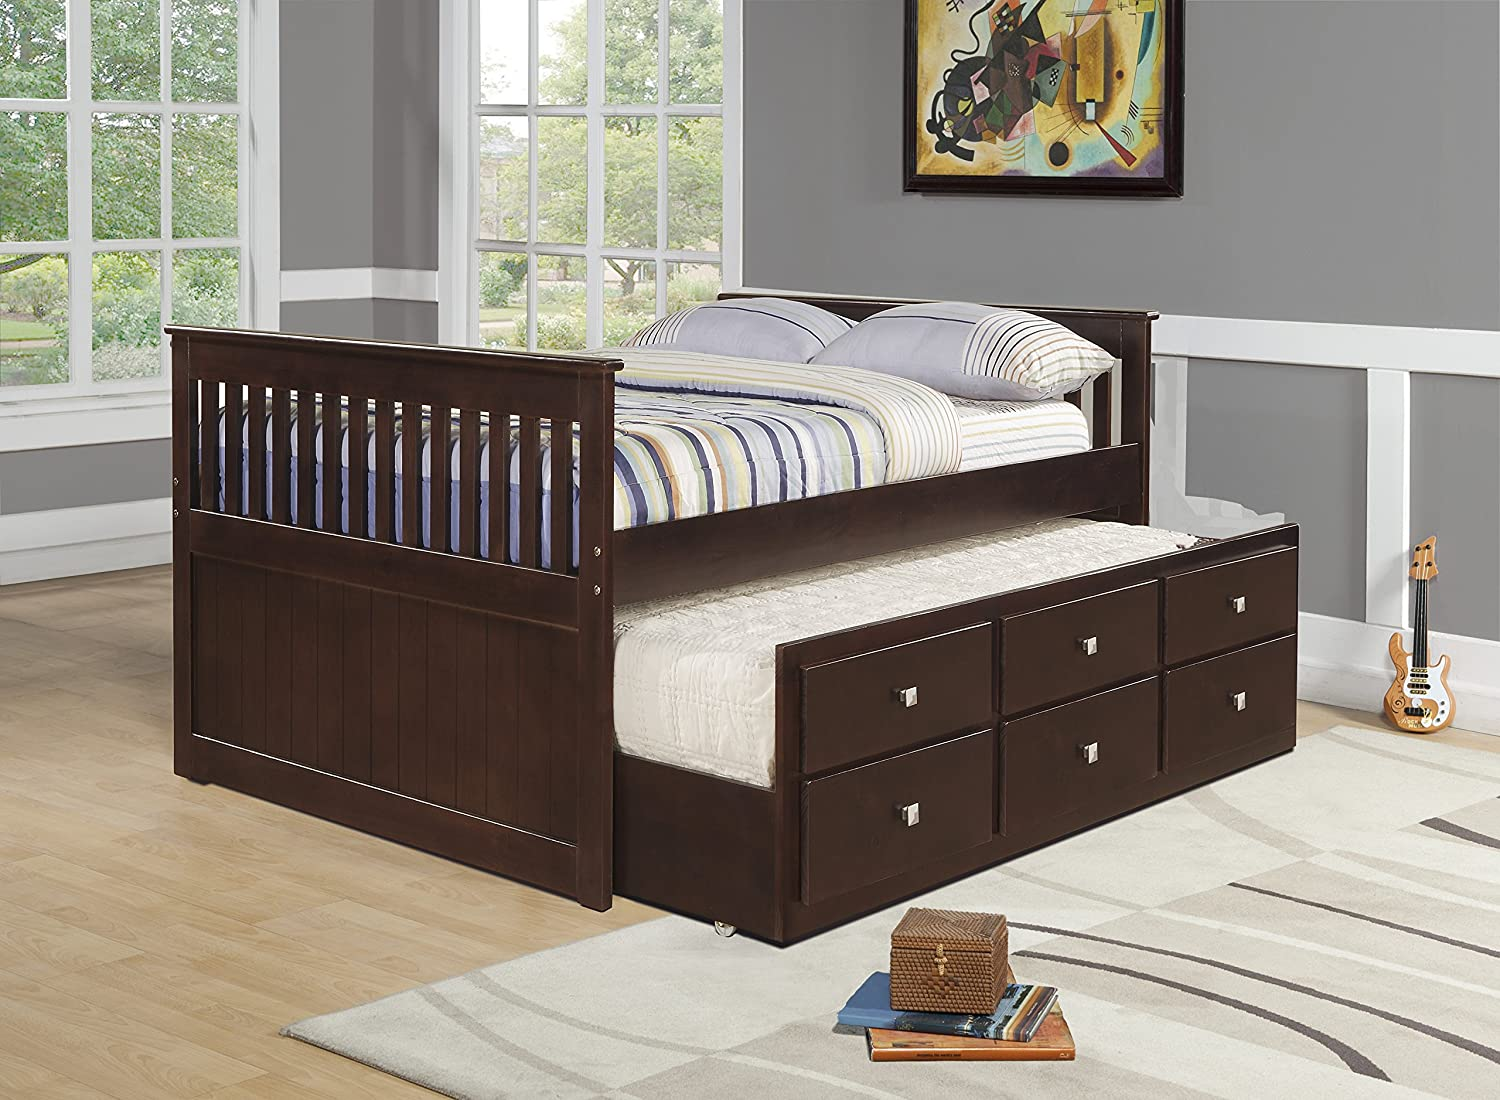 Amazon.com: DONCO Kids 303-FCP Captains Trundle Bed, Full, Dark ...